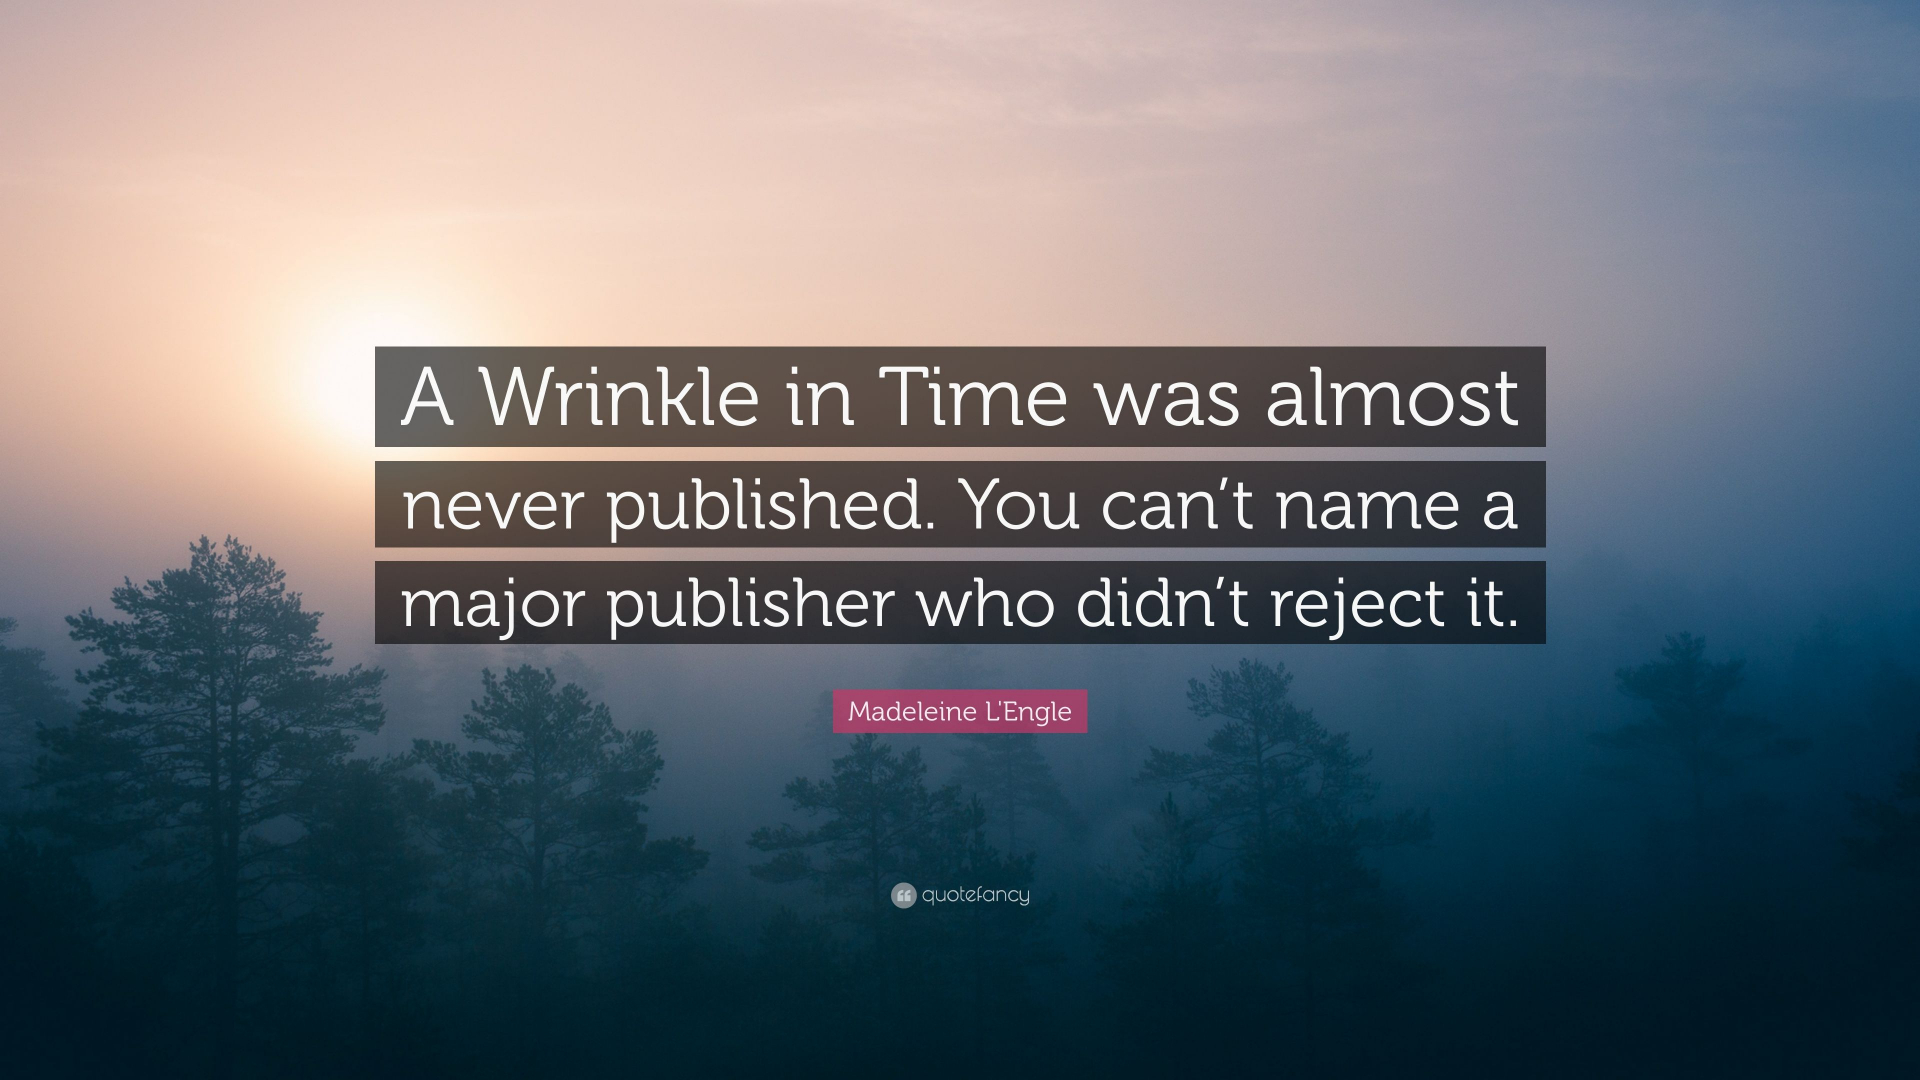 Free Download A Wrinkle In Time Wallpapers 3840x2160 For Your